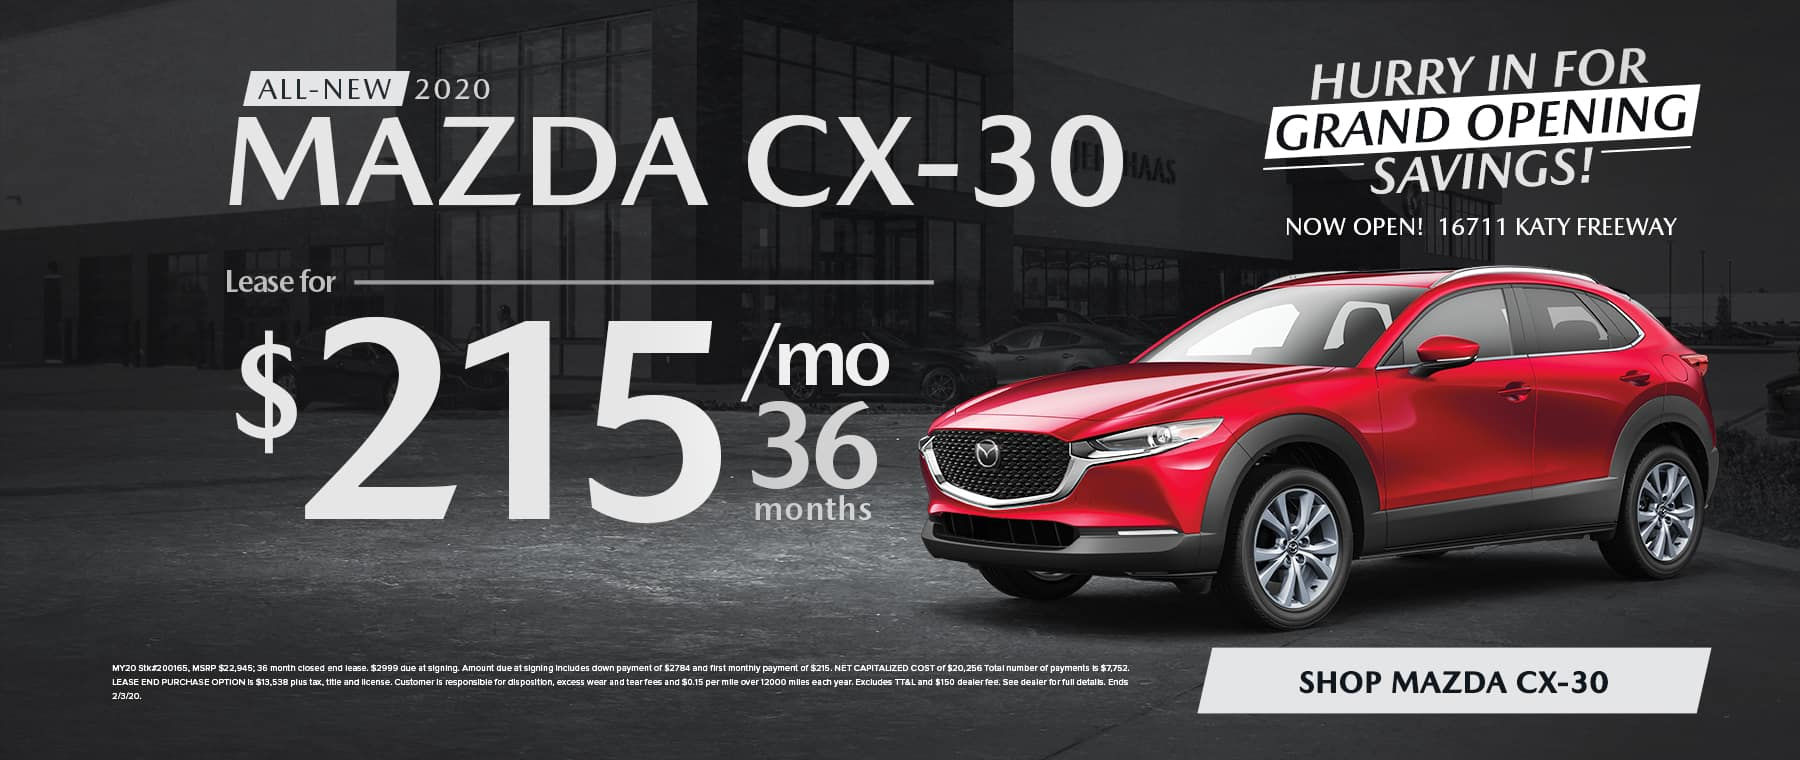 All-New 2020 MAZDA CX-30 Lease for $215/mo for 36 mo